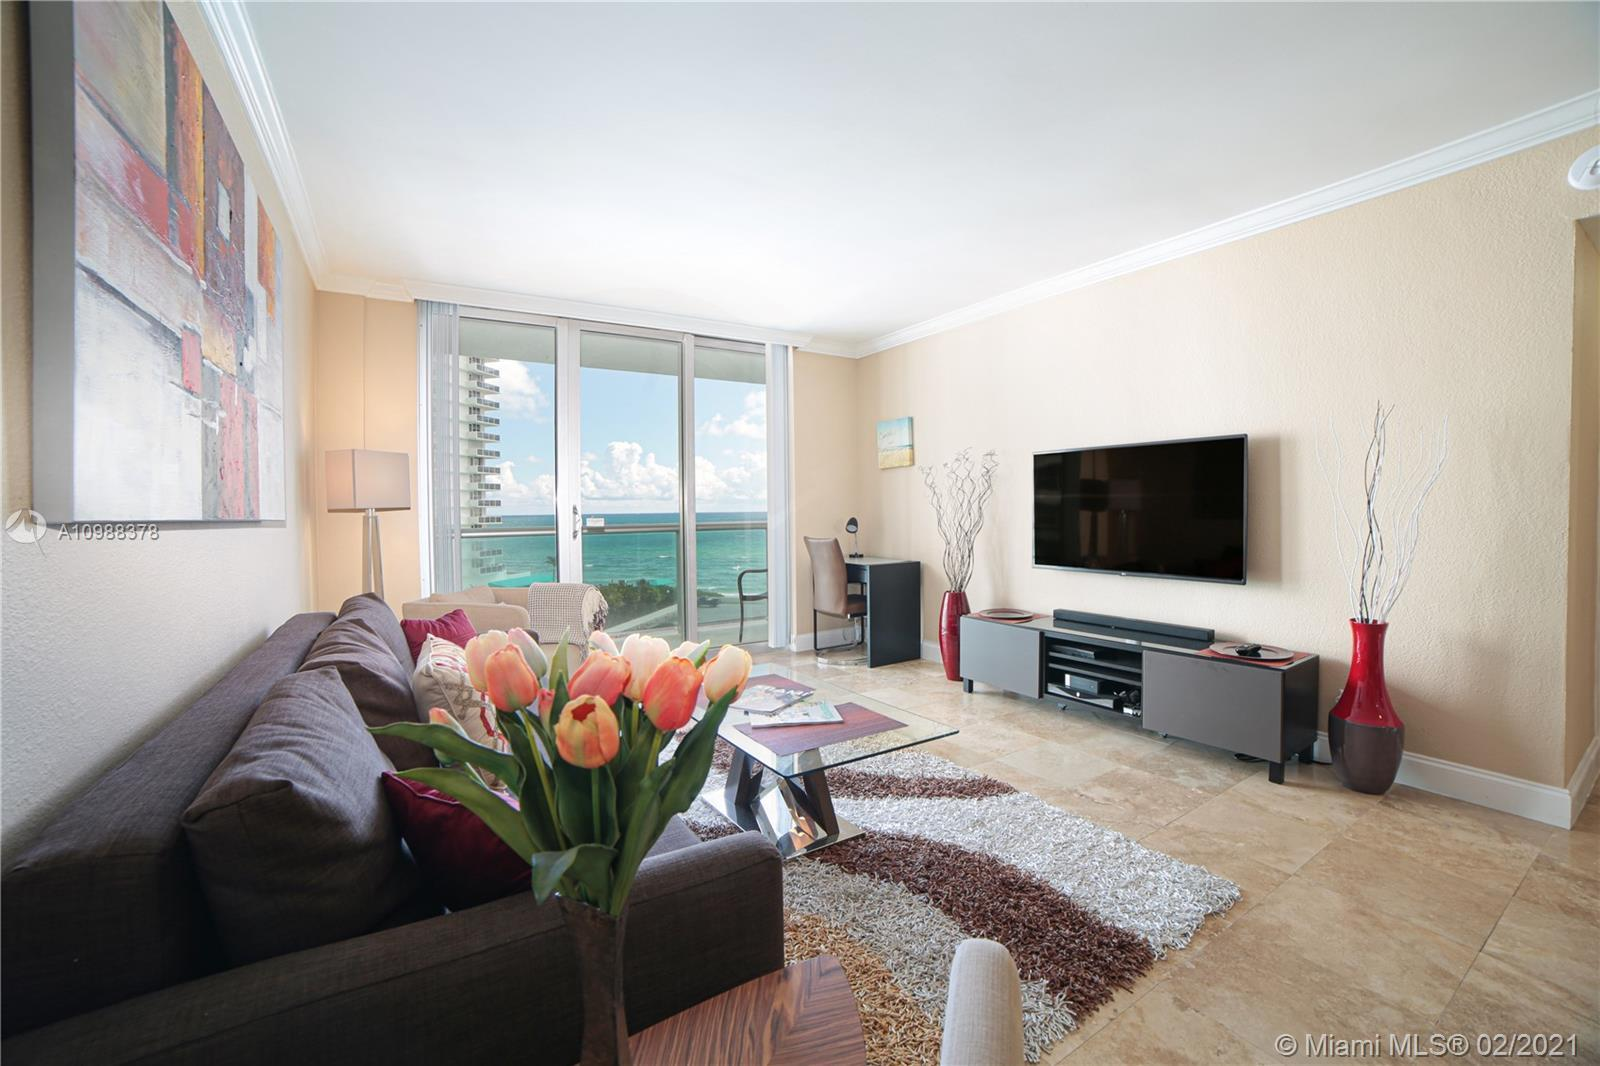 BEACHFRONT LIVING AT THE TIDES! GORGEOUS DIRECT OCEAN VIEW FROM THIS SPACIOUS 1 BEDROOM UNIT WITH LA